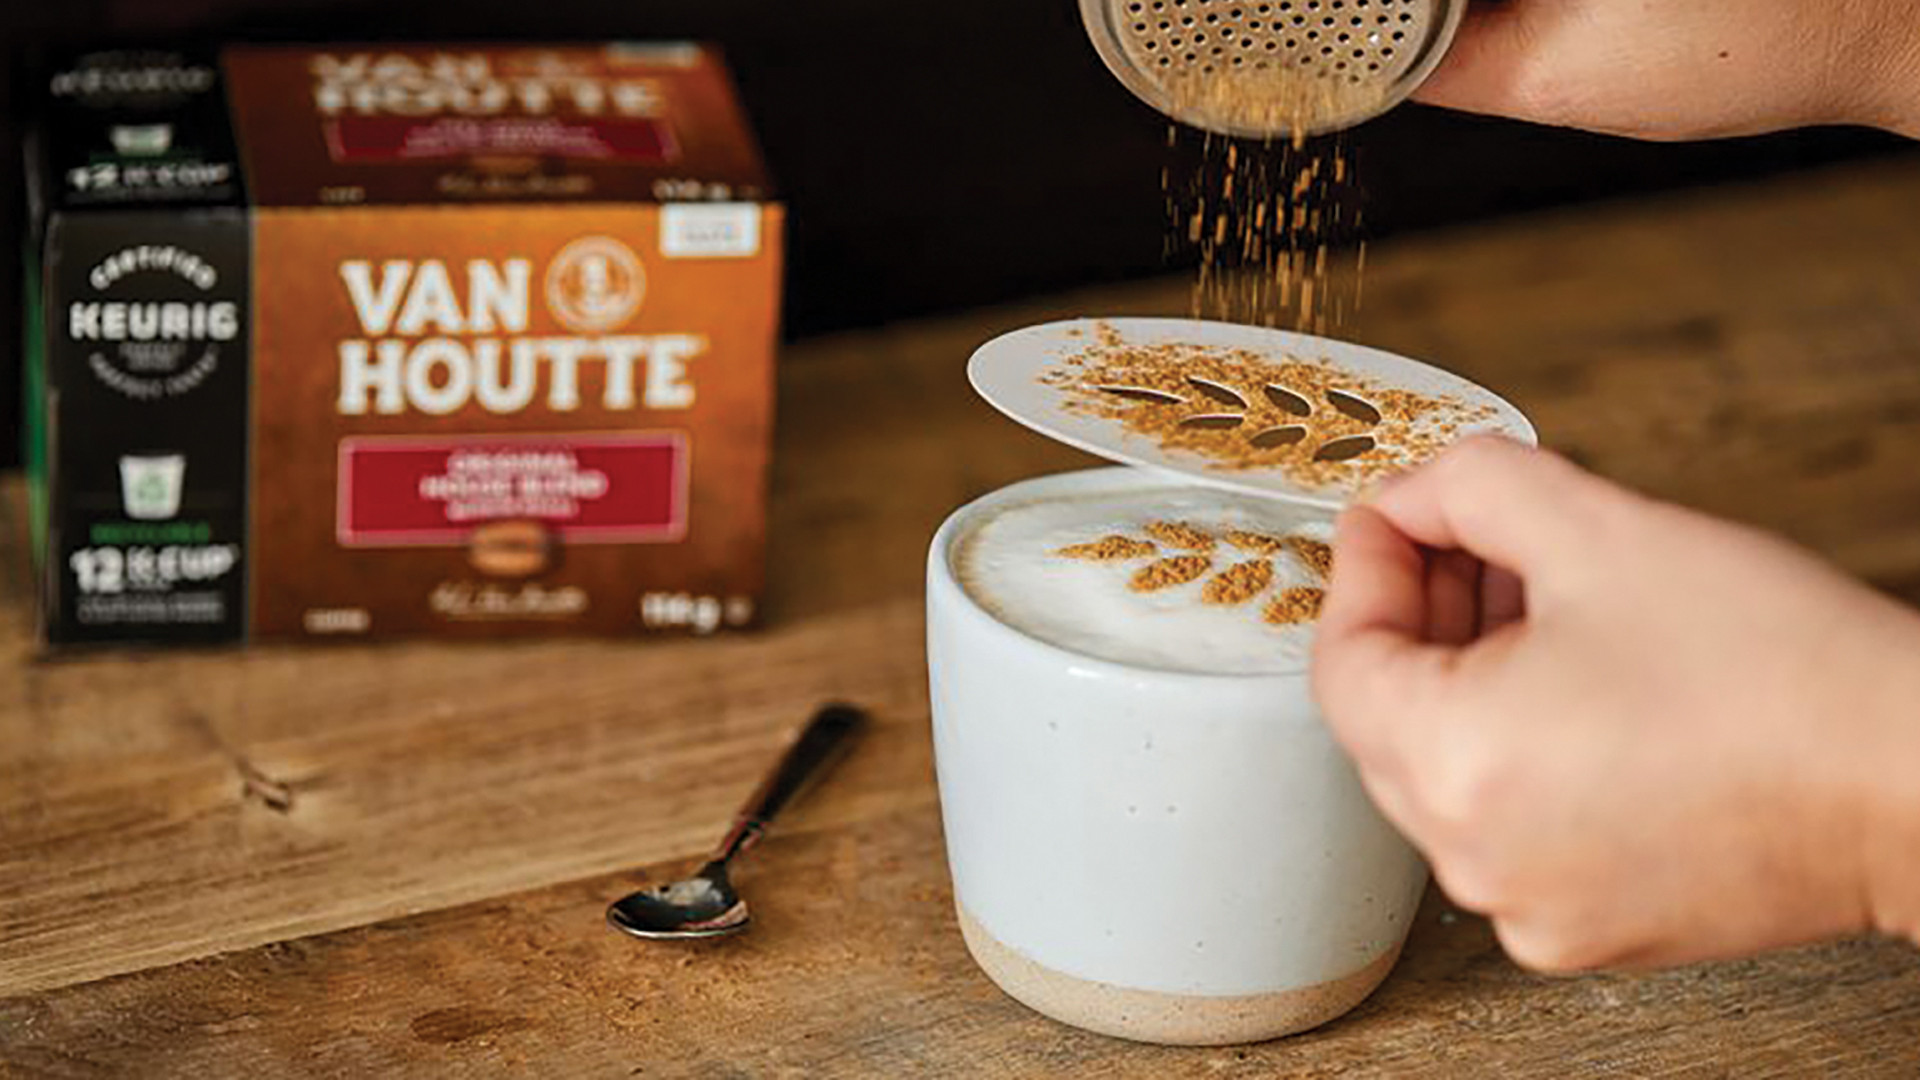 Van Houtte Coffee | Making a holiday latte